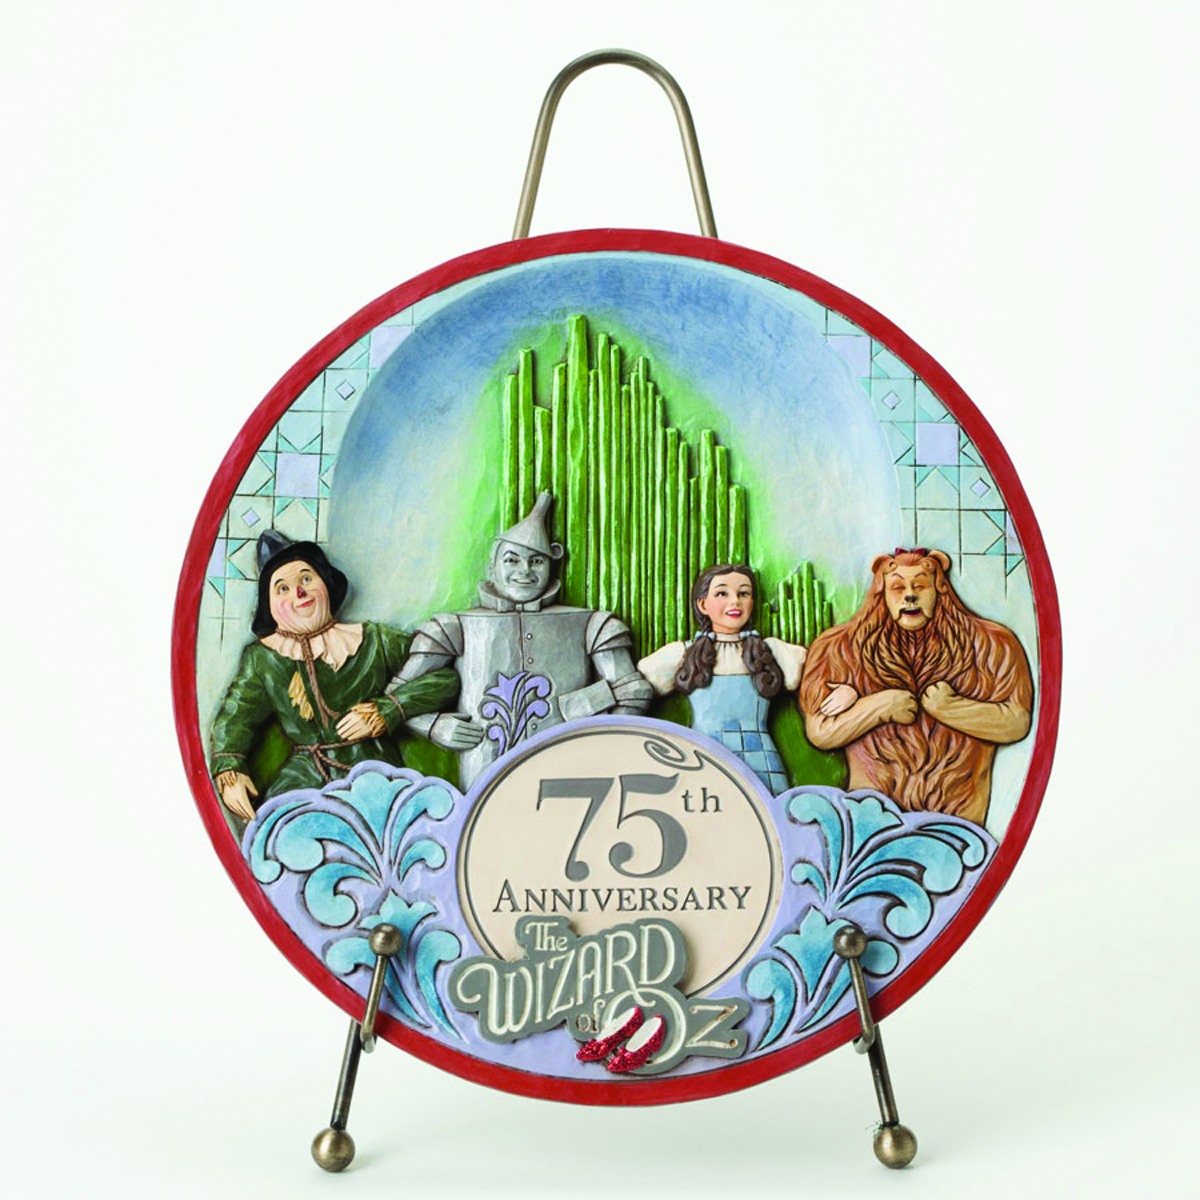 JIM SHORE WIZARD OF OZ 75TH ANNIVERSARY PLATE